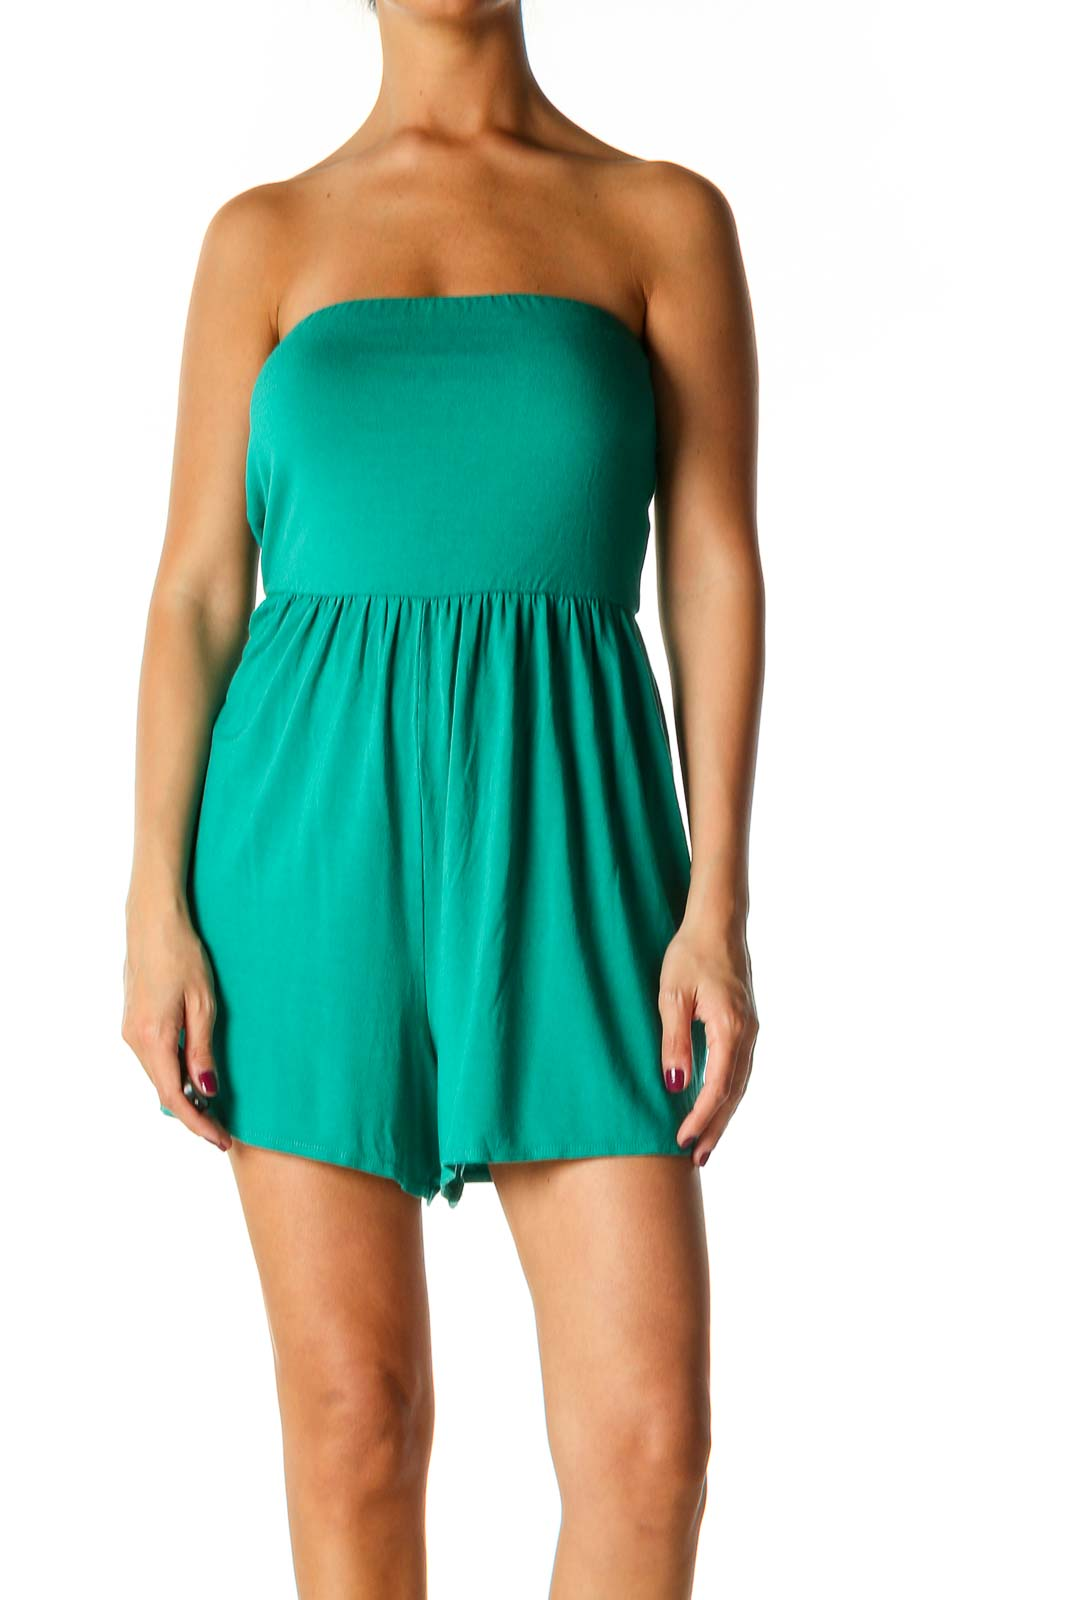 Green Solid Casual Romper Front